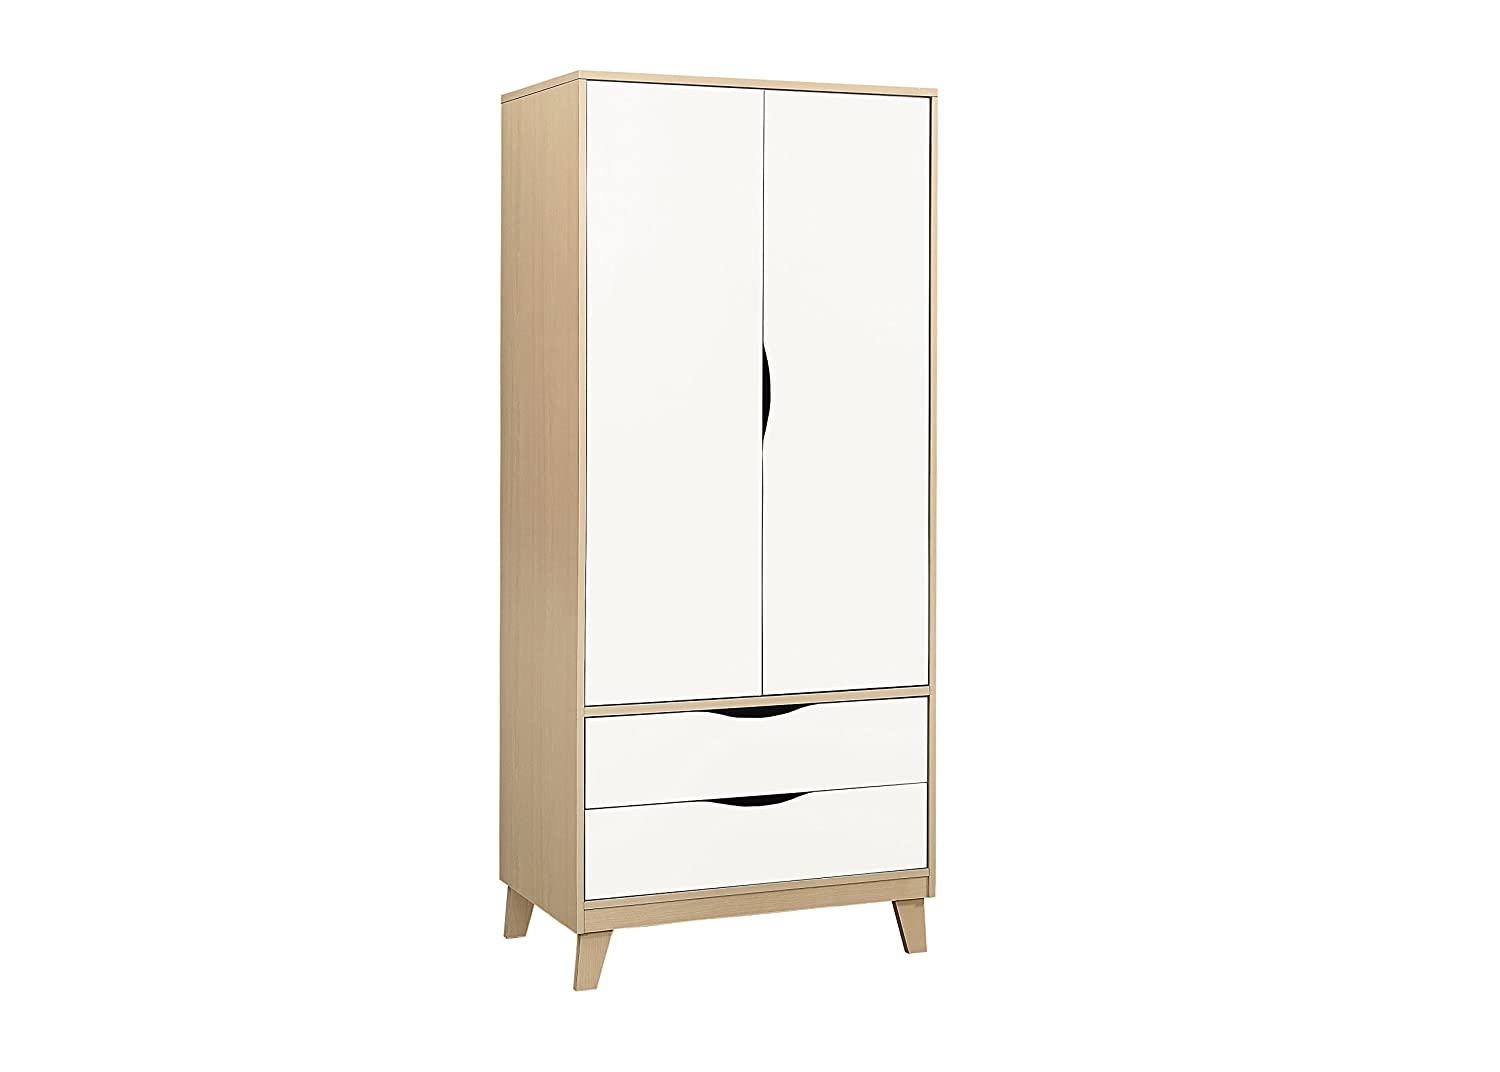 Birlea Kingston 2 Door and 2 Drawer Wardrobe, Wood, Beech and White Birlea Furniture KIN22WDBEW